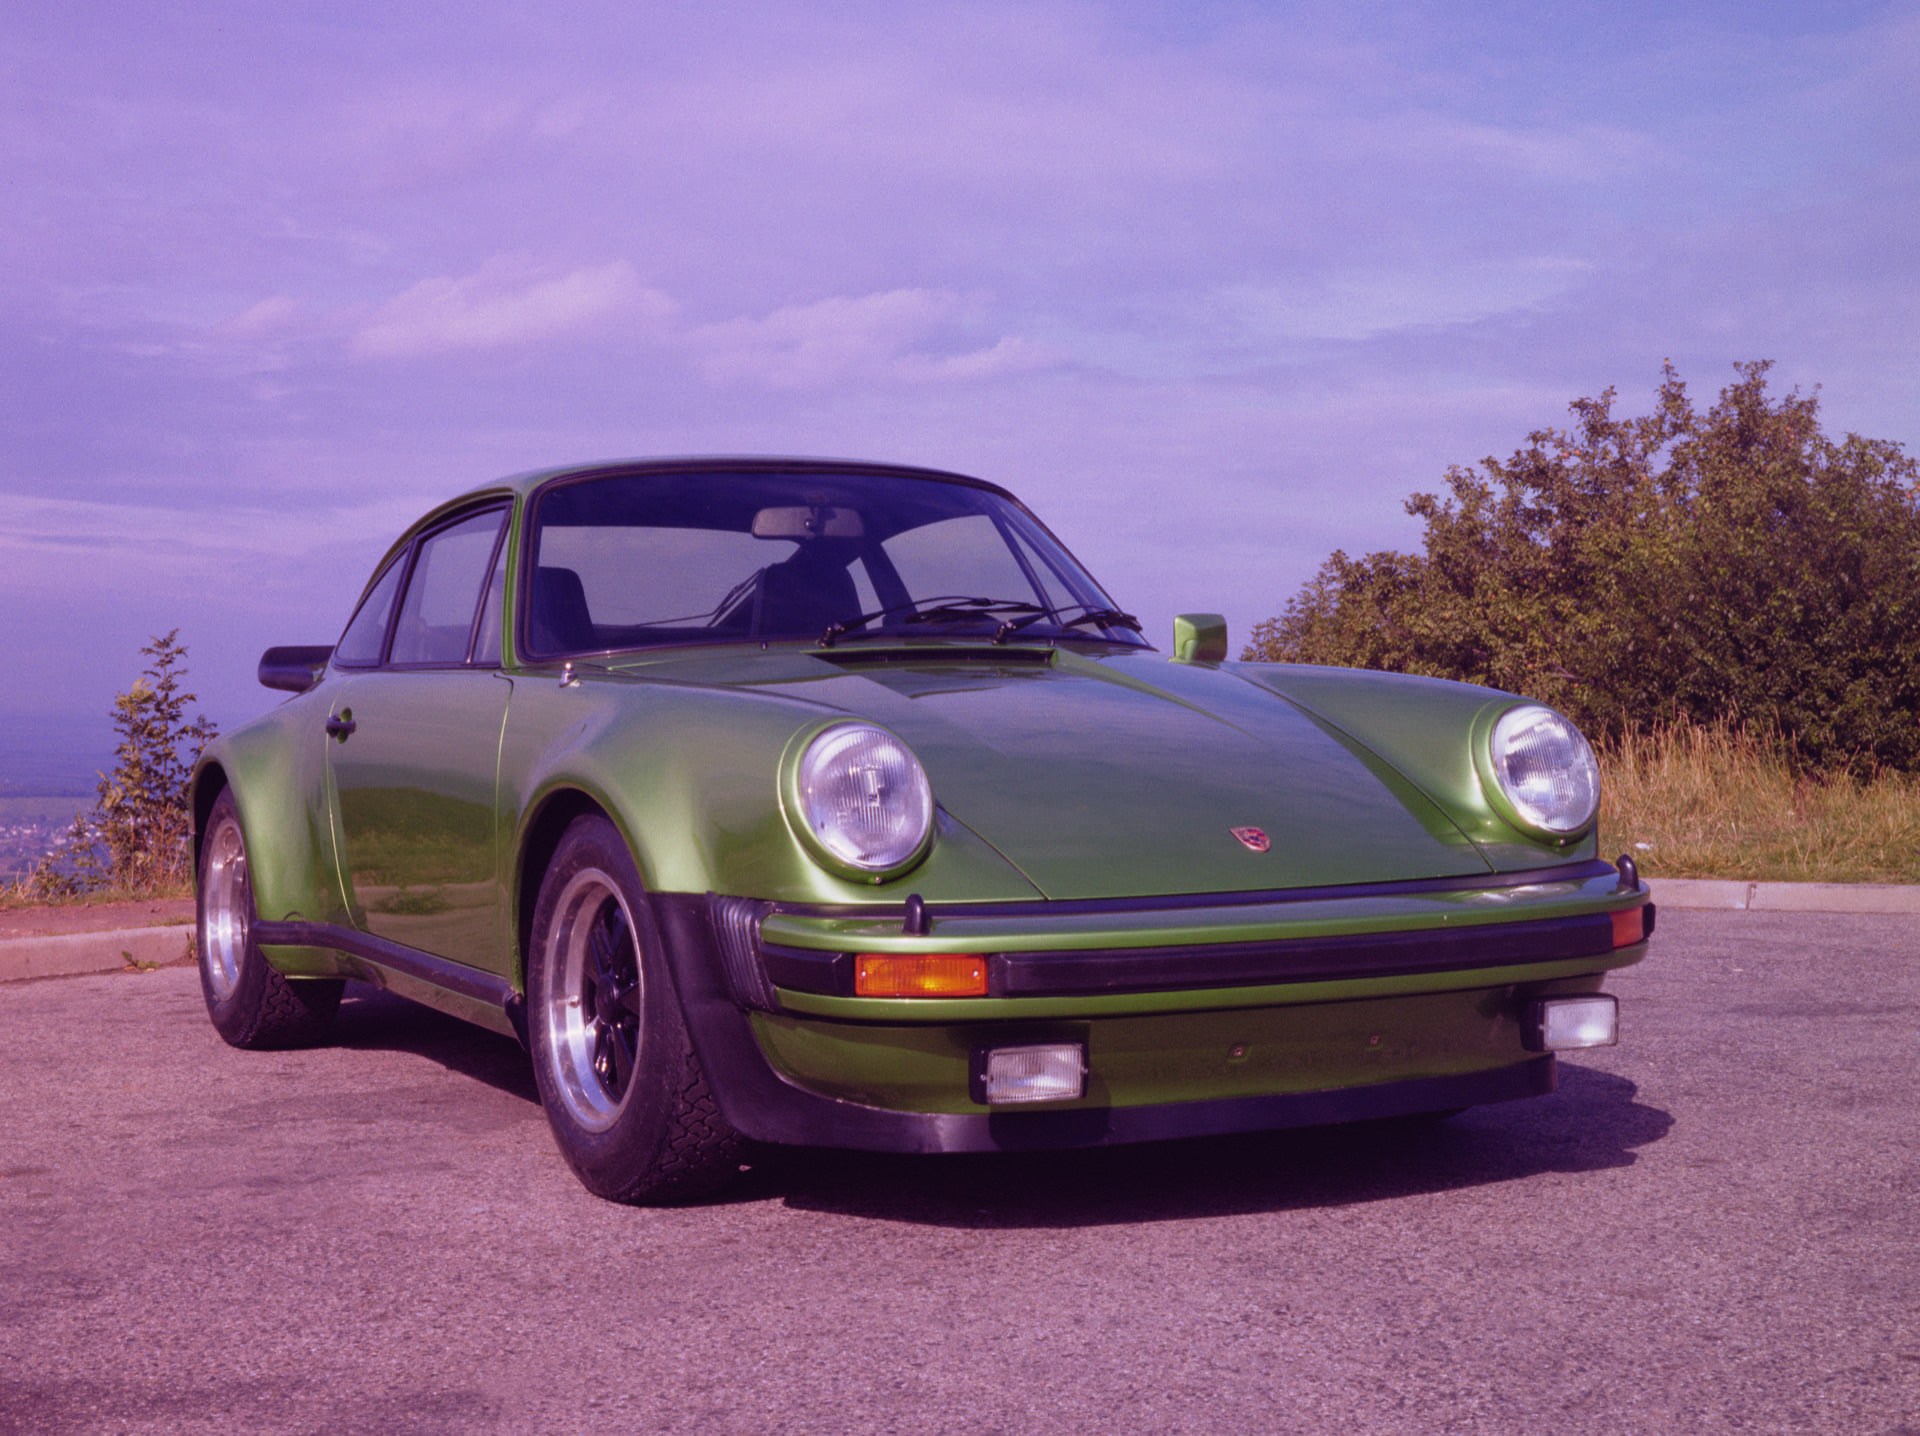 Porsche 911 G Turbo 3 0 Coupe 1975 2